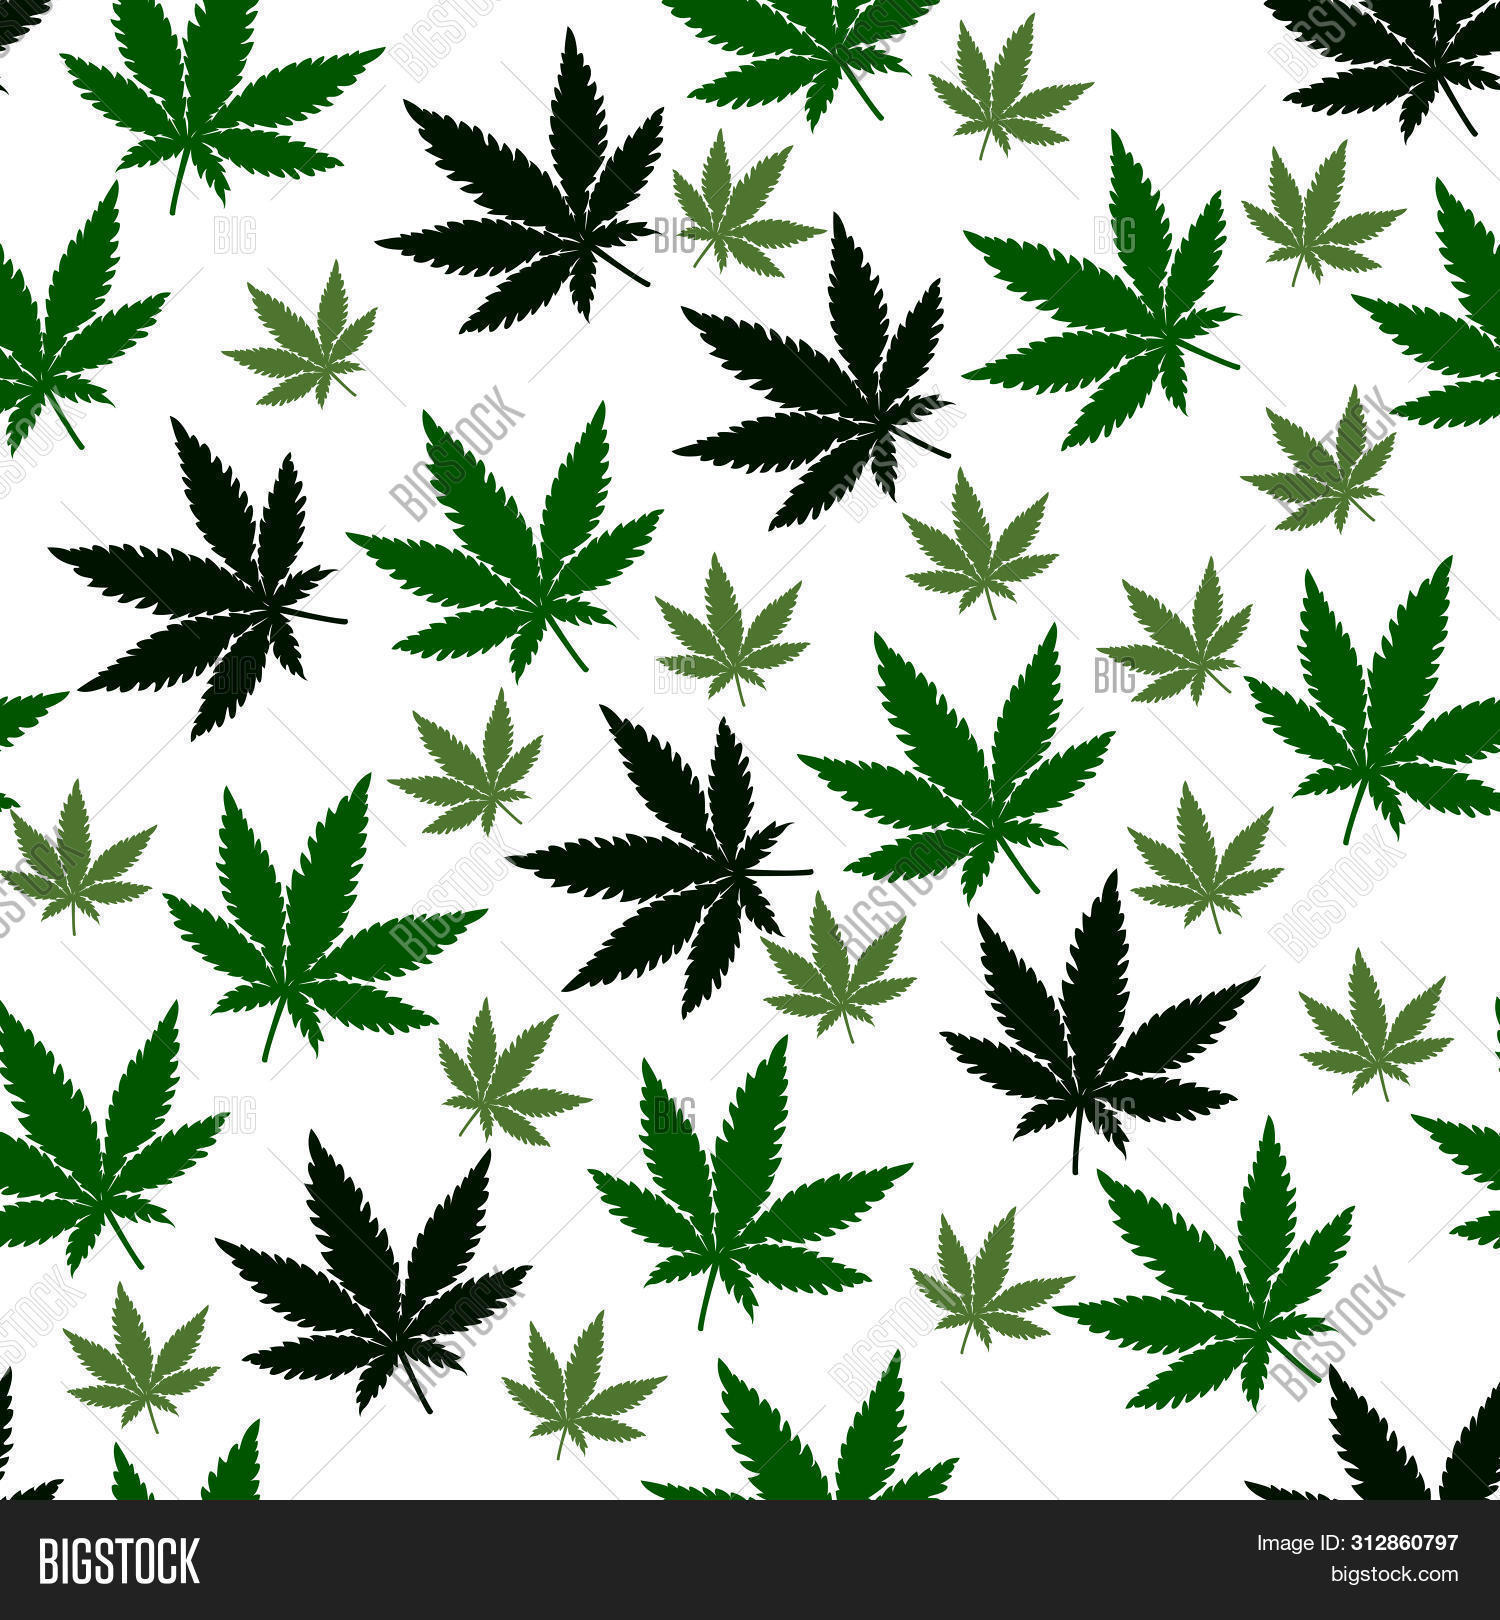 Cannabis Leaves Vector Photo Free Trial Bigstock